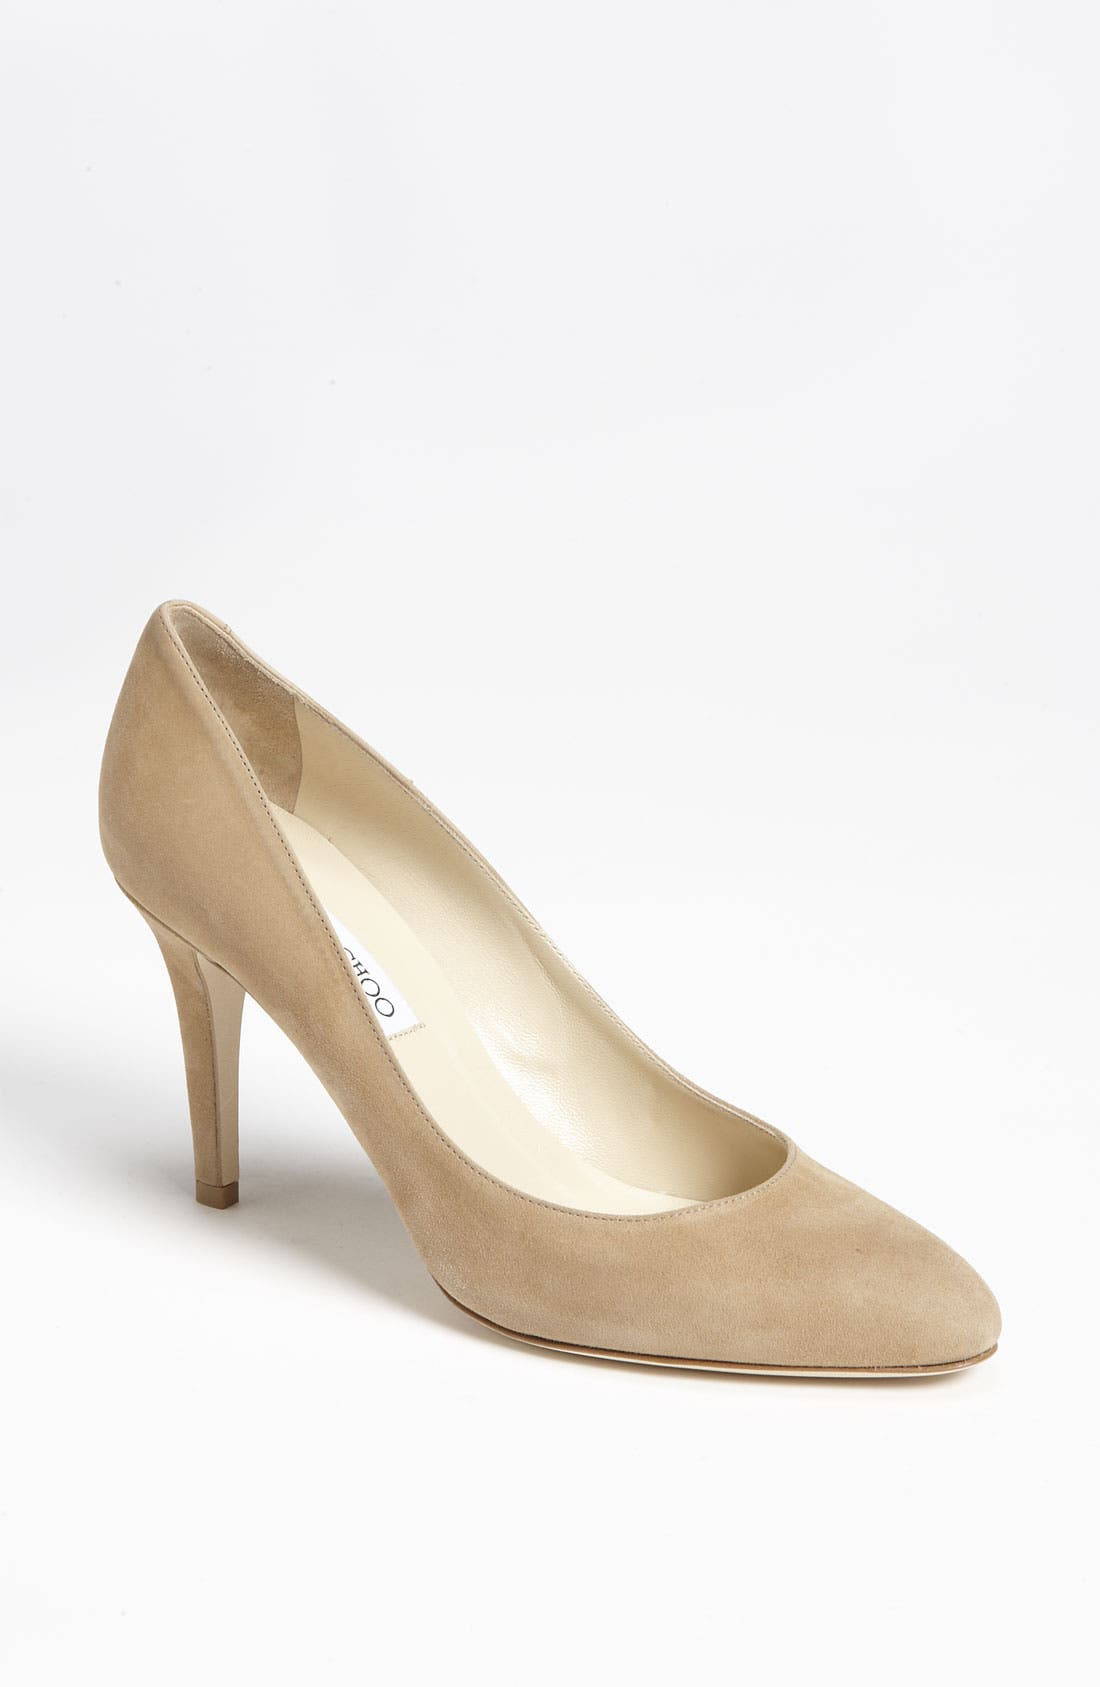 Main Image - Jimmy Choo 'Victory' Pump